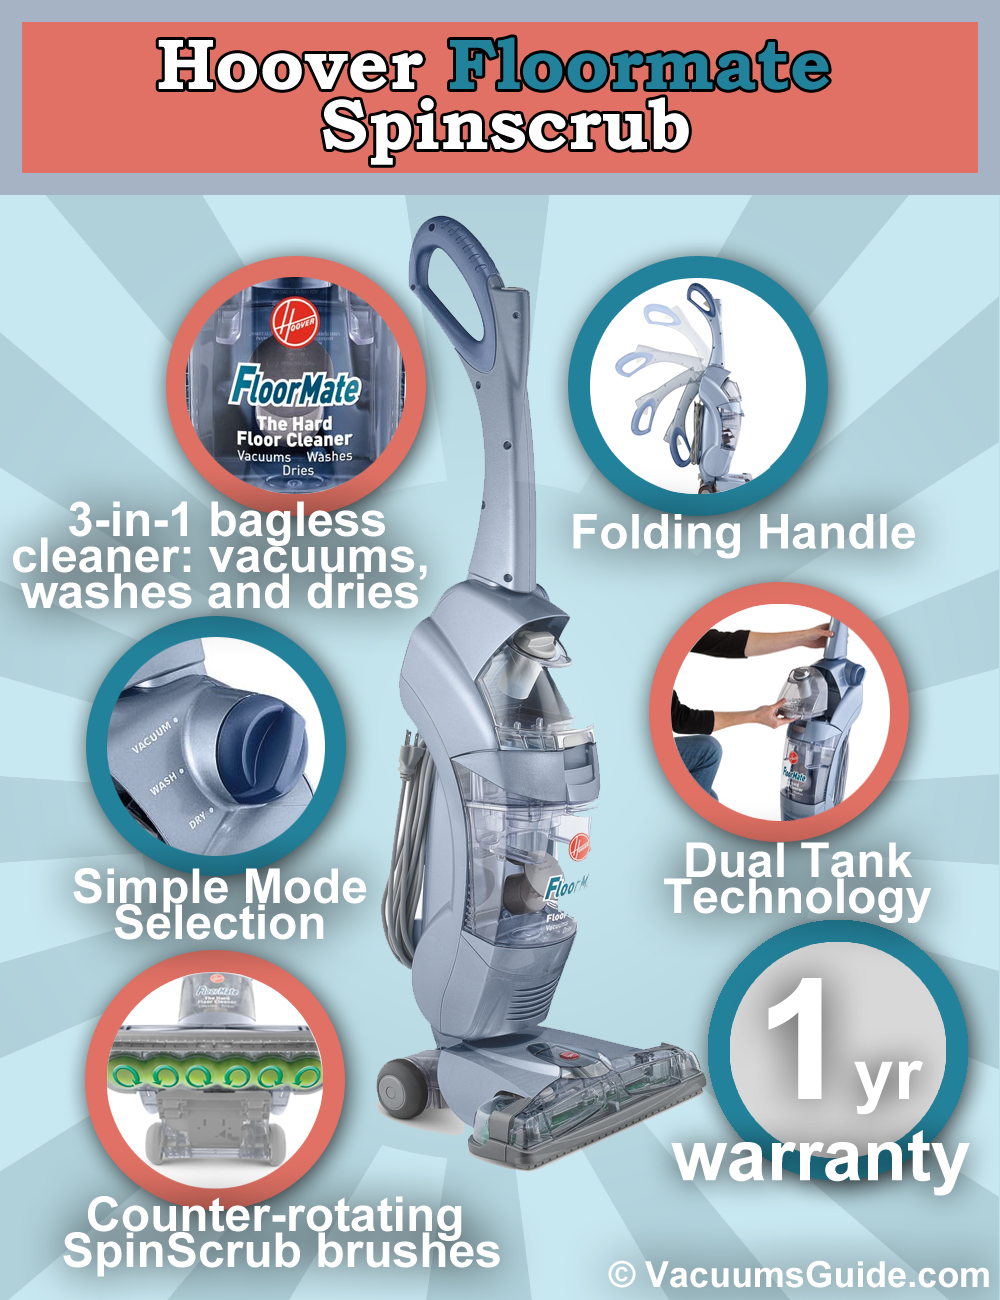 hoover floormate spinscrub review - is older better?